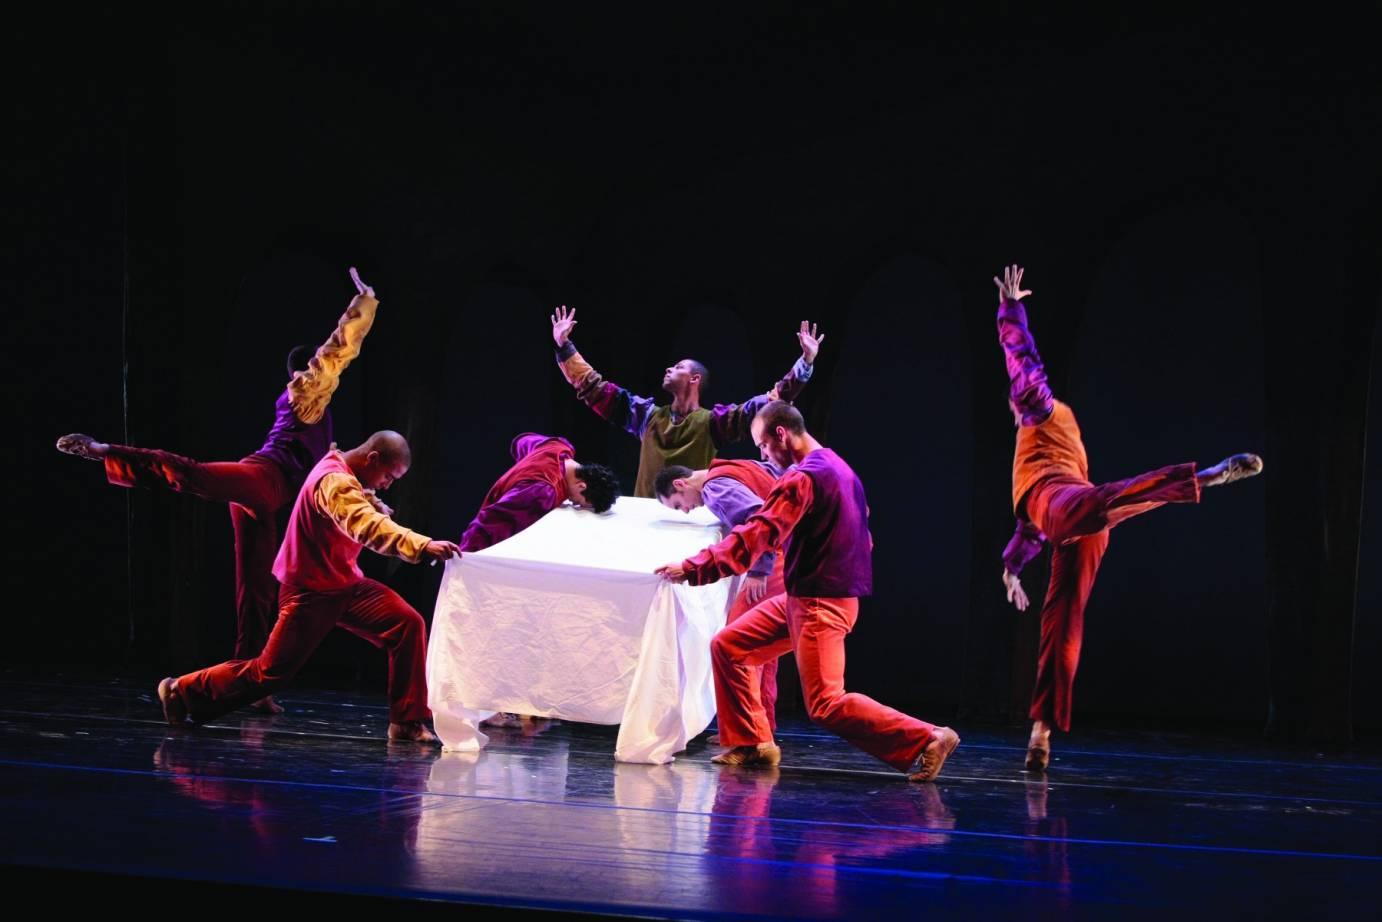 Male dancers dressed in reds, yellows and purples cluster around a table with a white tablecloth